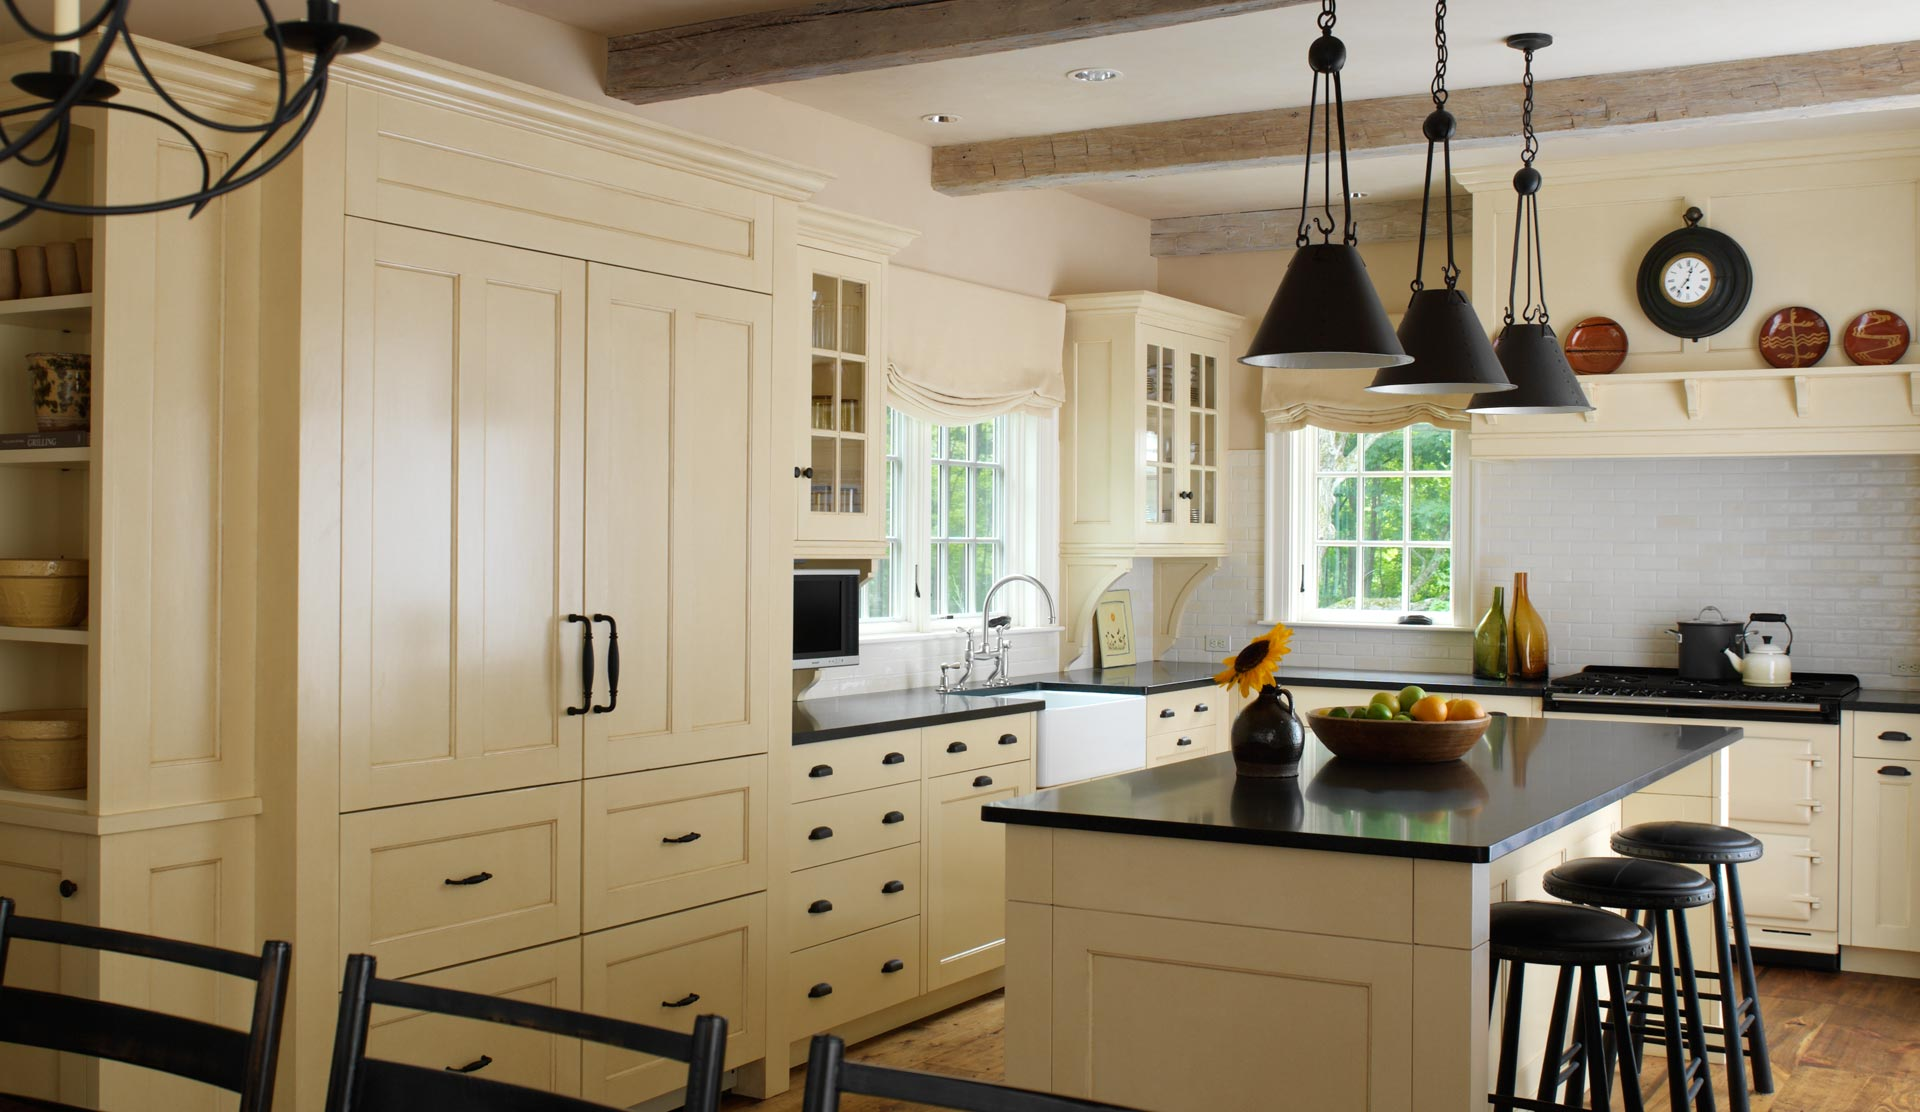 Kitchen Cabinet Colors To Paint Elizabeth Jahn Architecture Country House Interior